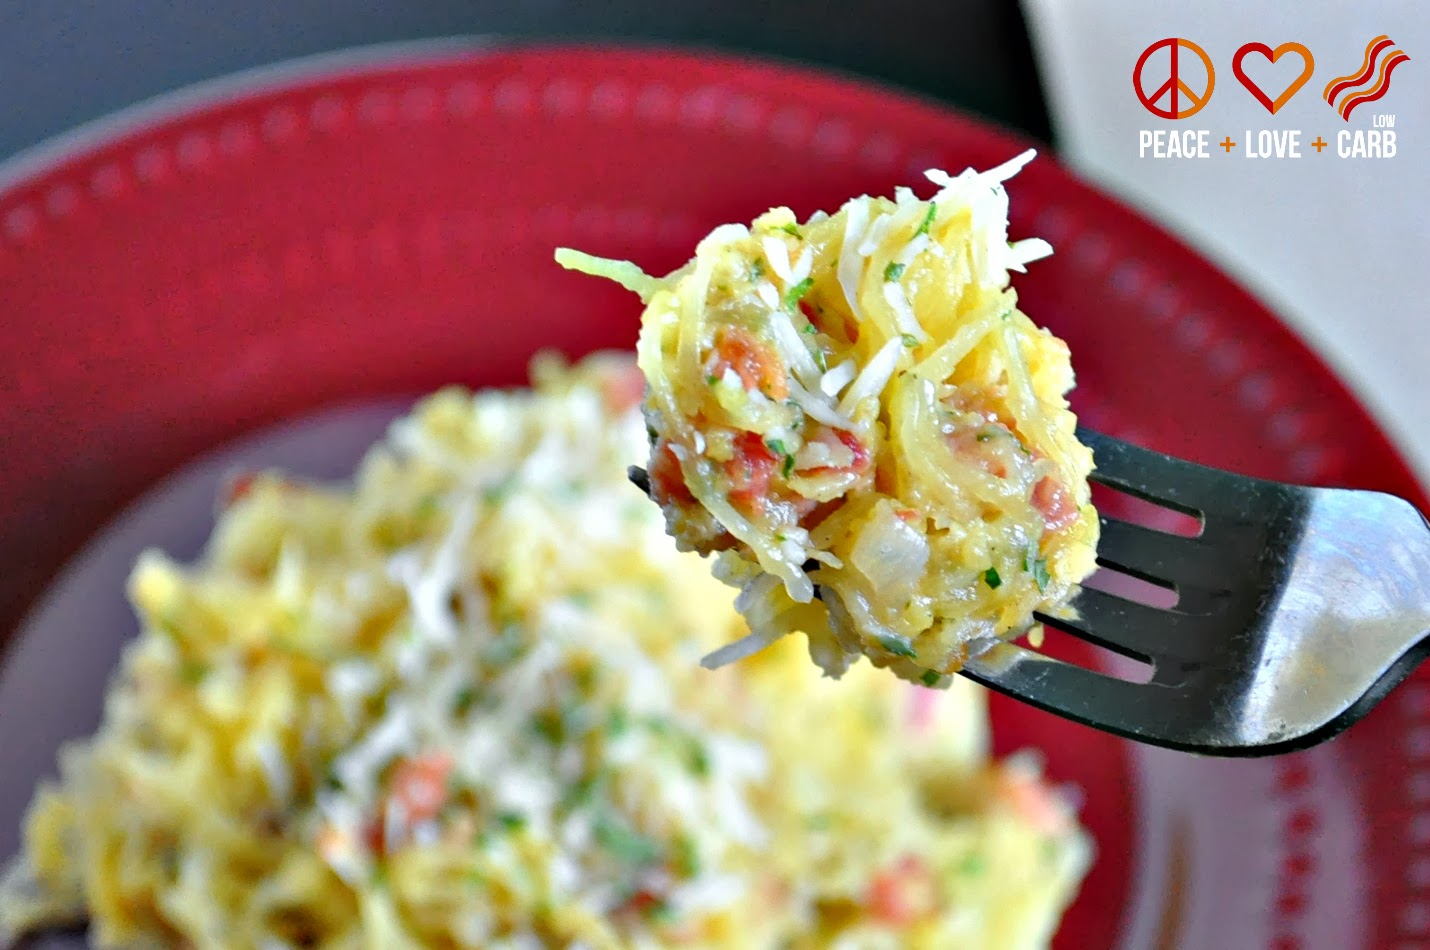 Low Carb Pasta Carbonara - Spaghetti Squash Carbonara with Pancetta and Parmesan